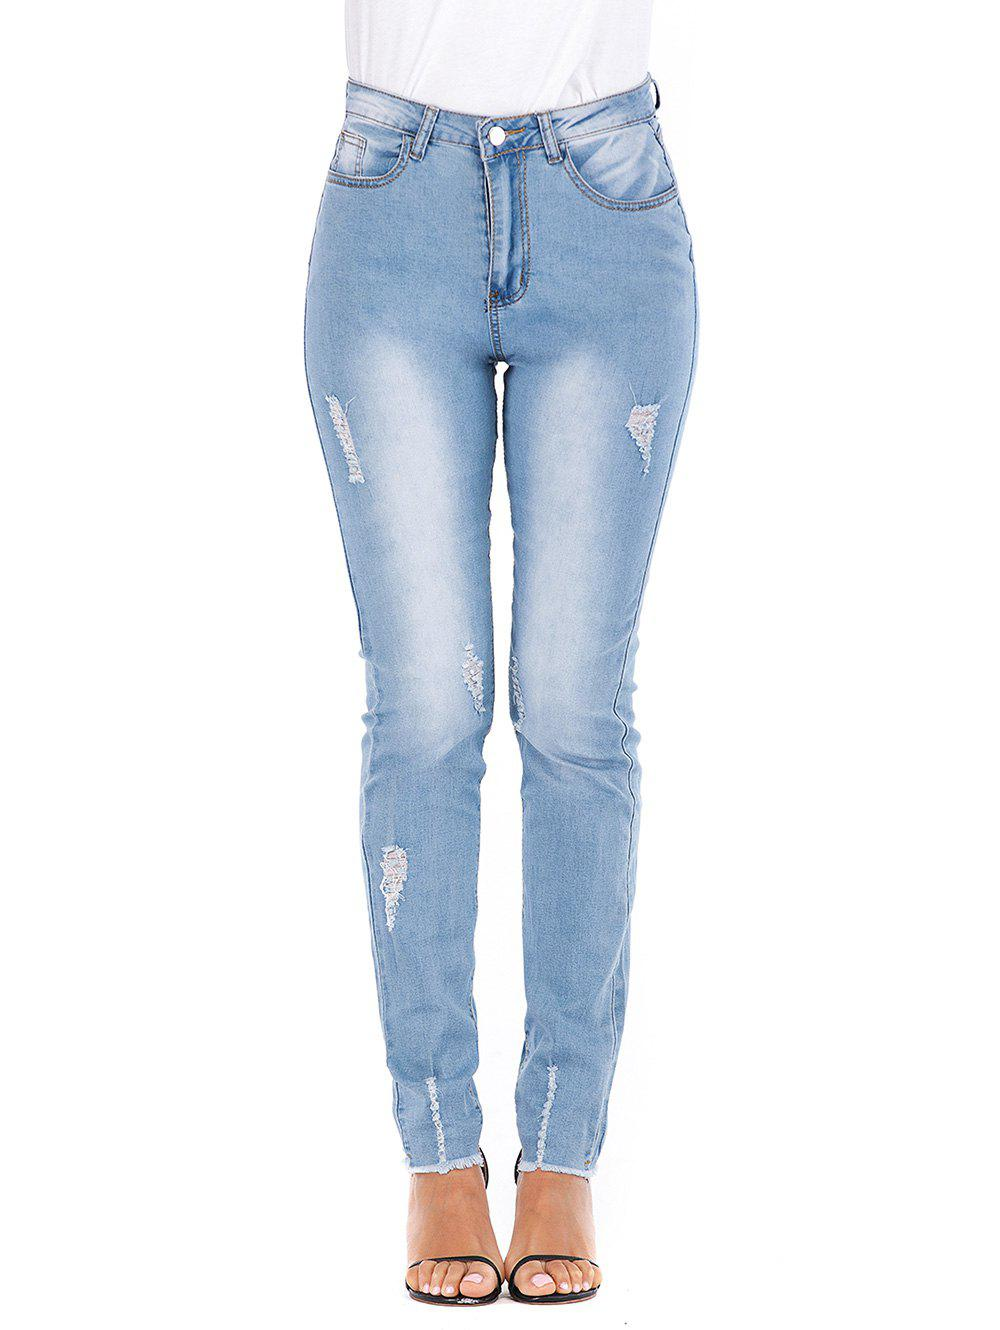 Frayed Hem High Waisted Ripped Skinny Jeans - JEANS BLUE 2XL